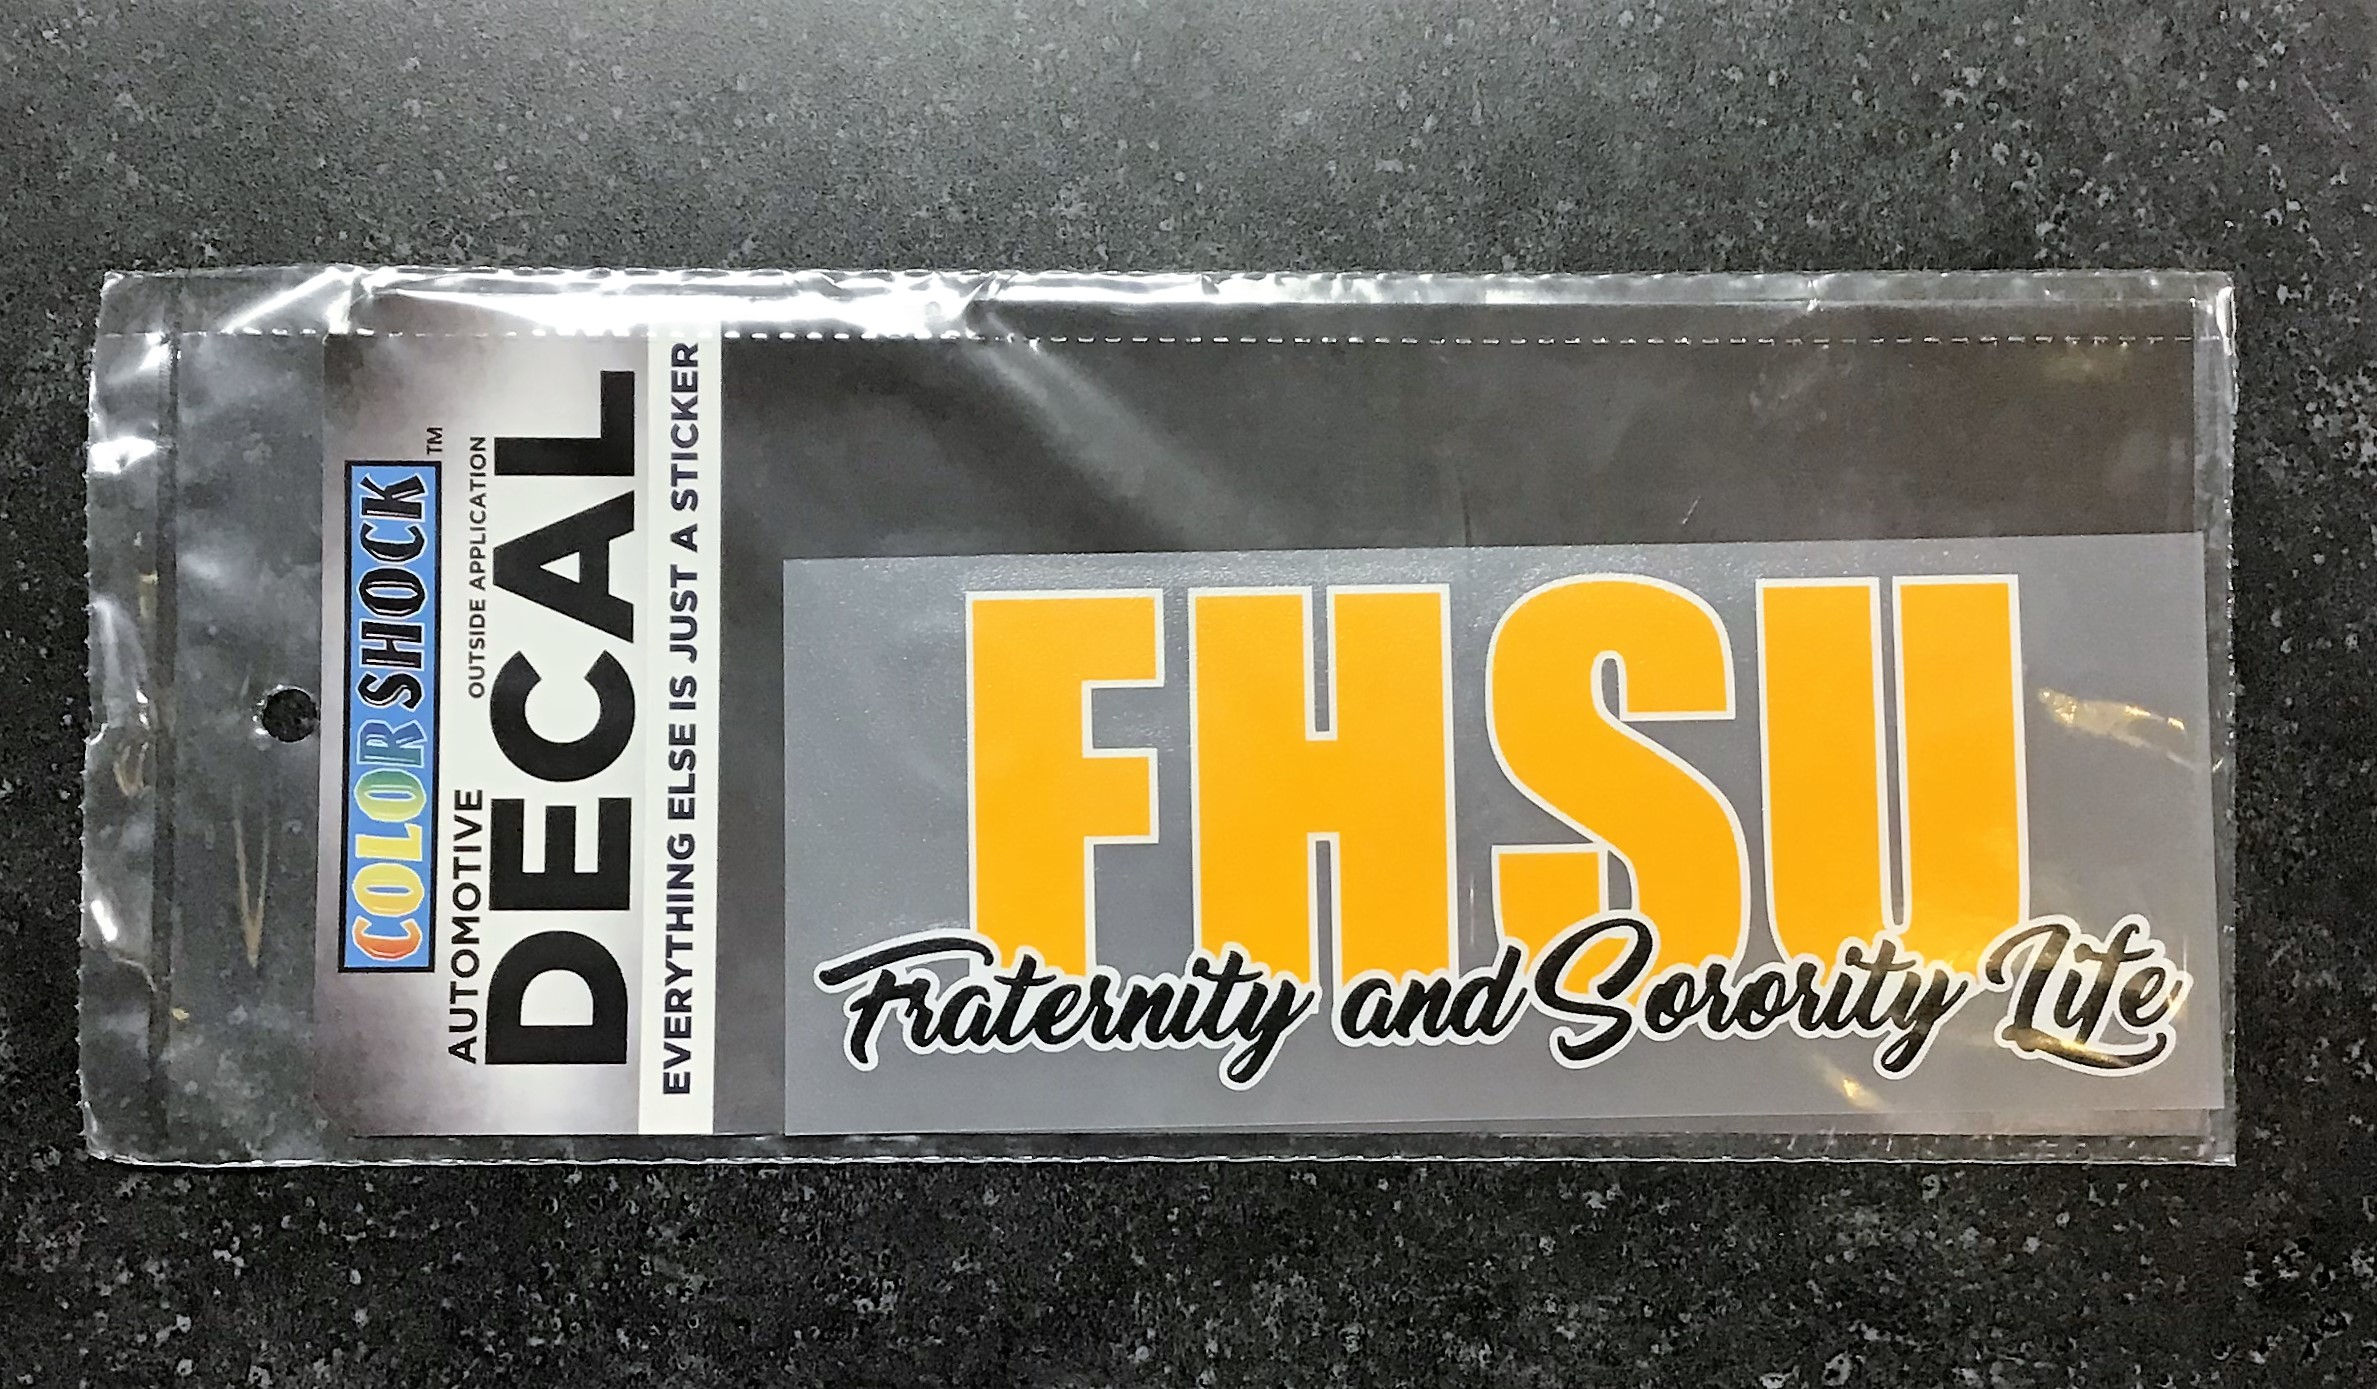 Image for the FHSU Fraternity and Sorority Life Decal, Color Shock product